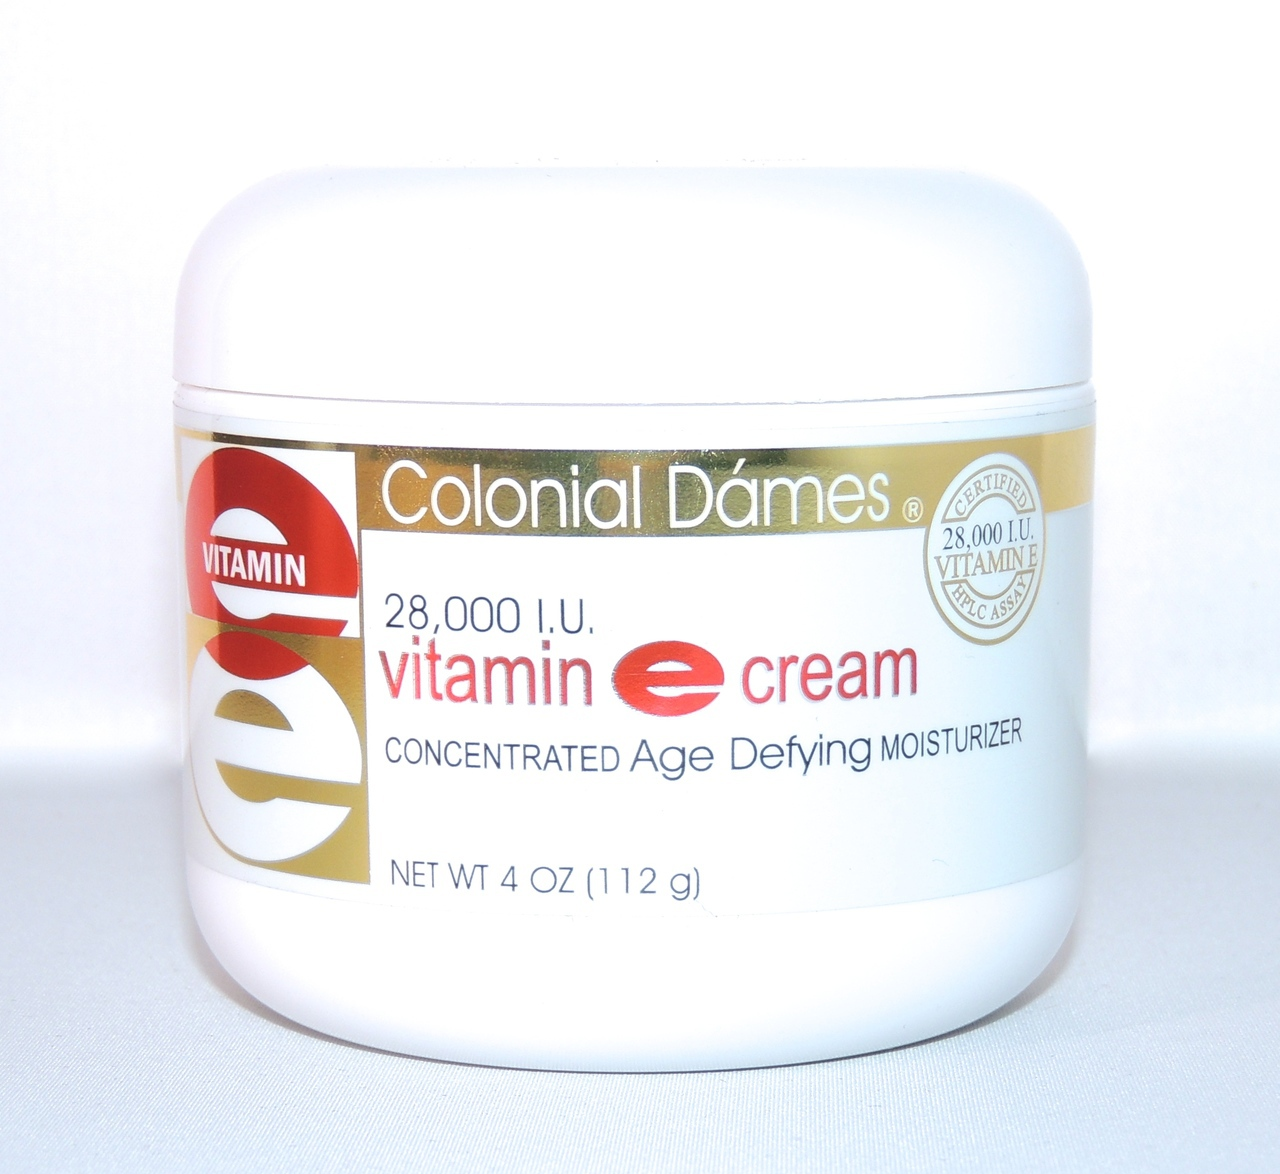 A jar of Colonial Dames vitamin E cream